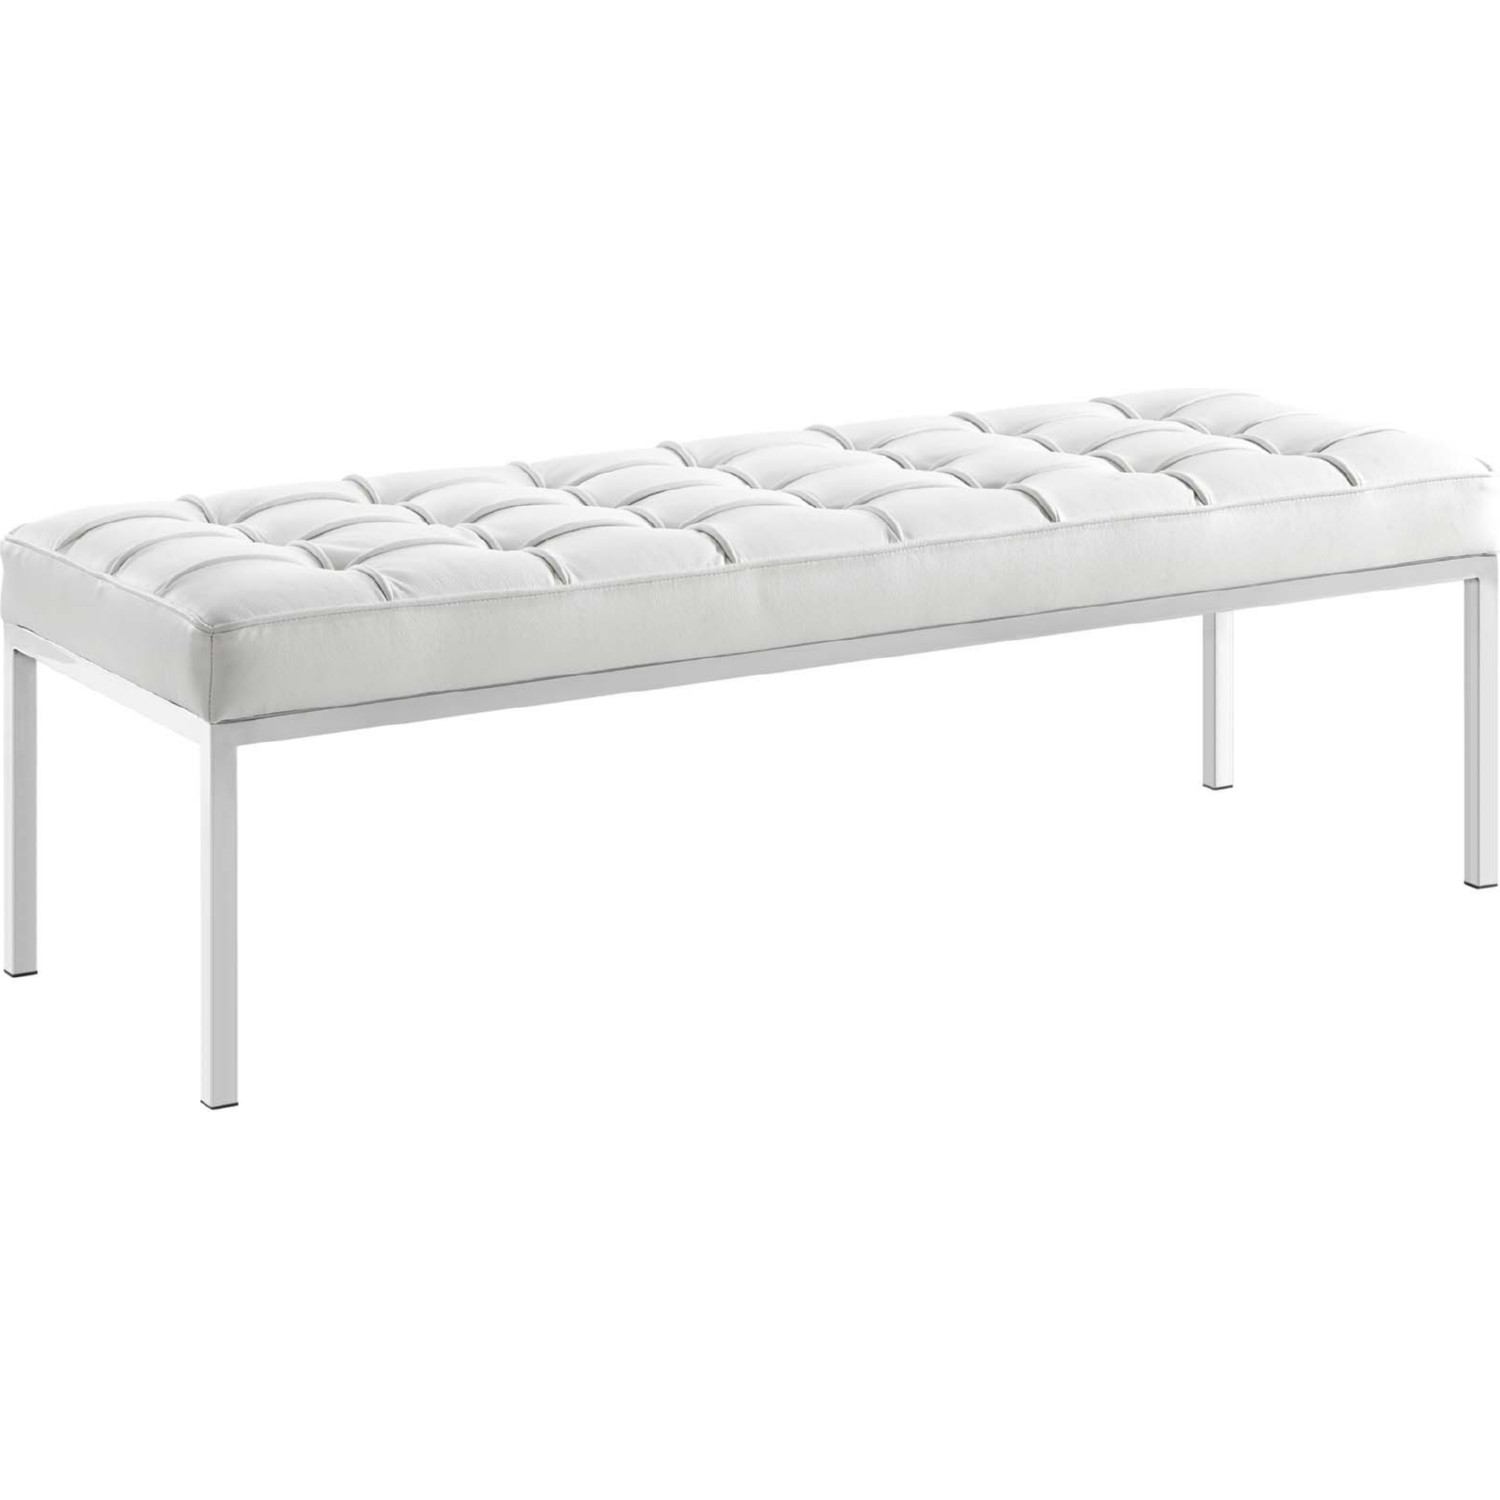 Loft Bench In Tufted White Leather On Stainless Steel By Modway